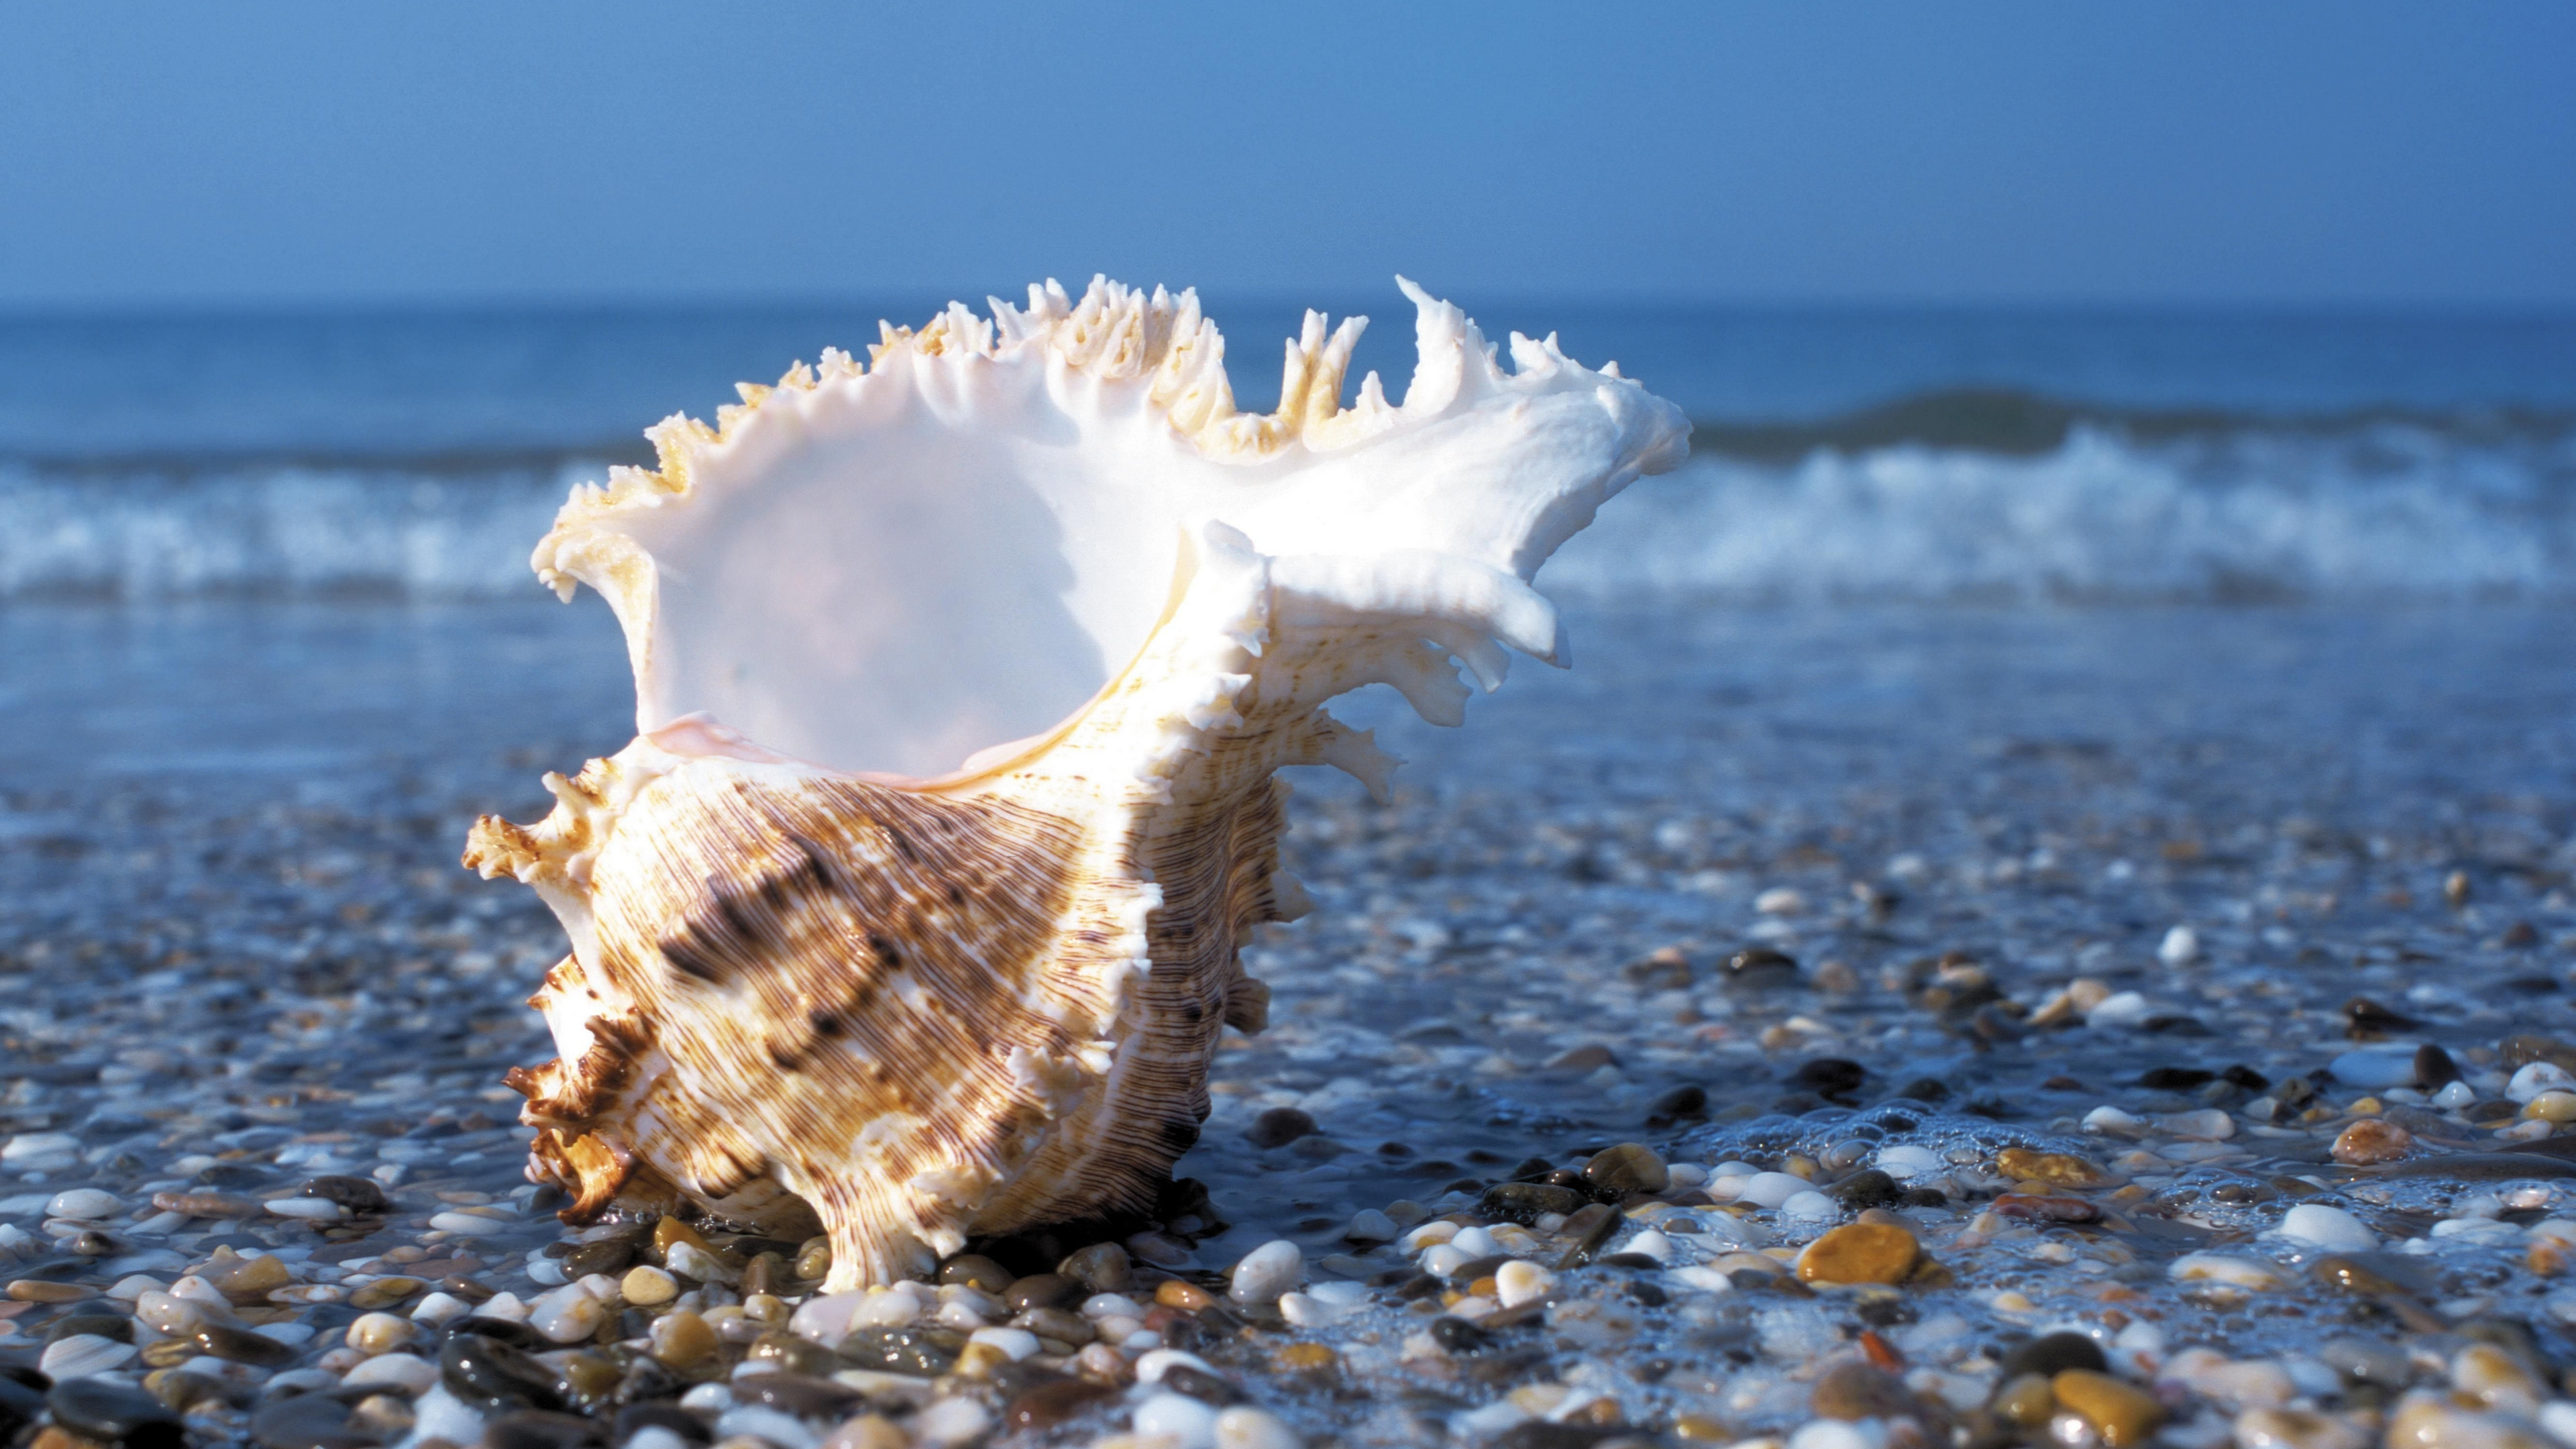 Shell Beach Wallpaper 4k Hd Background